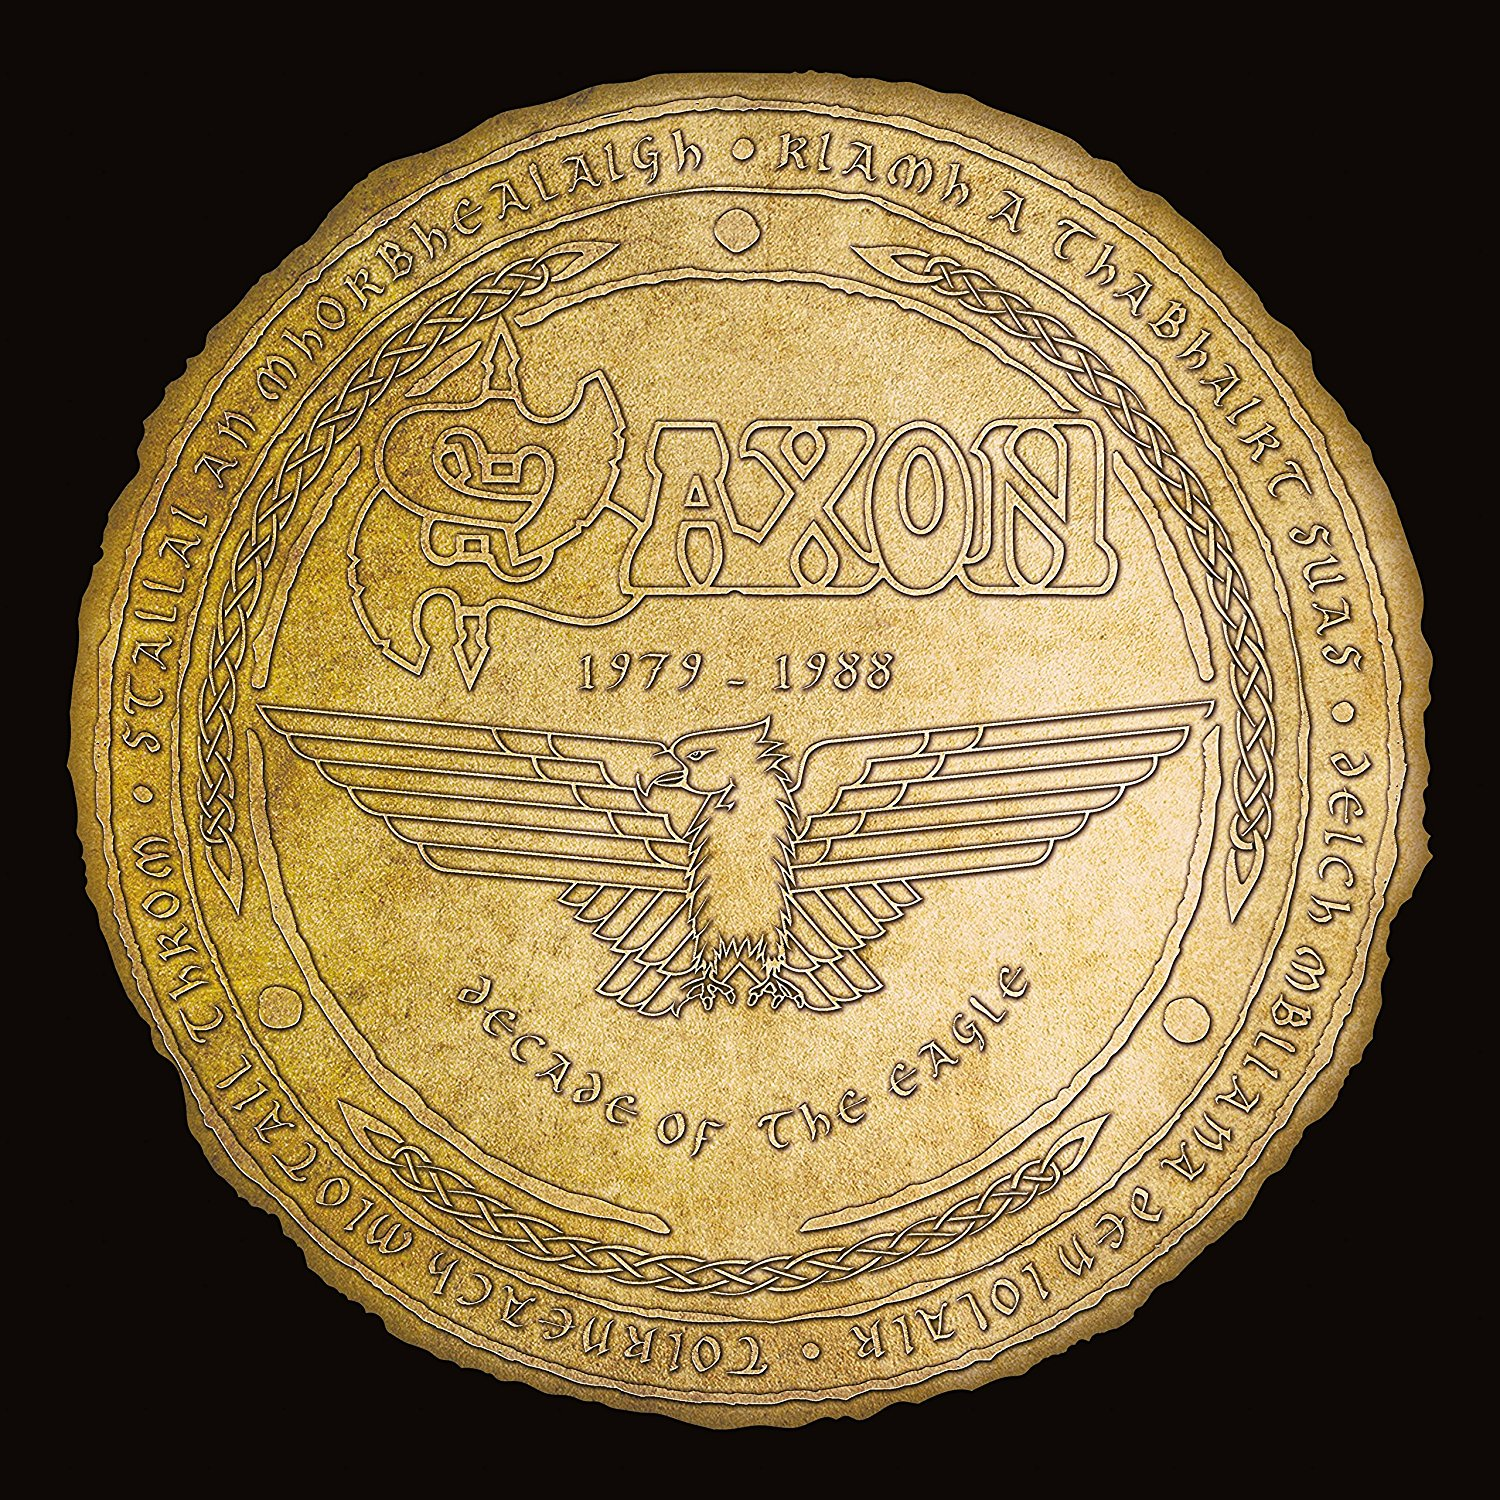 BMG To Reissue Three Classic Saxon Albums On May 25TH